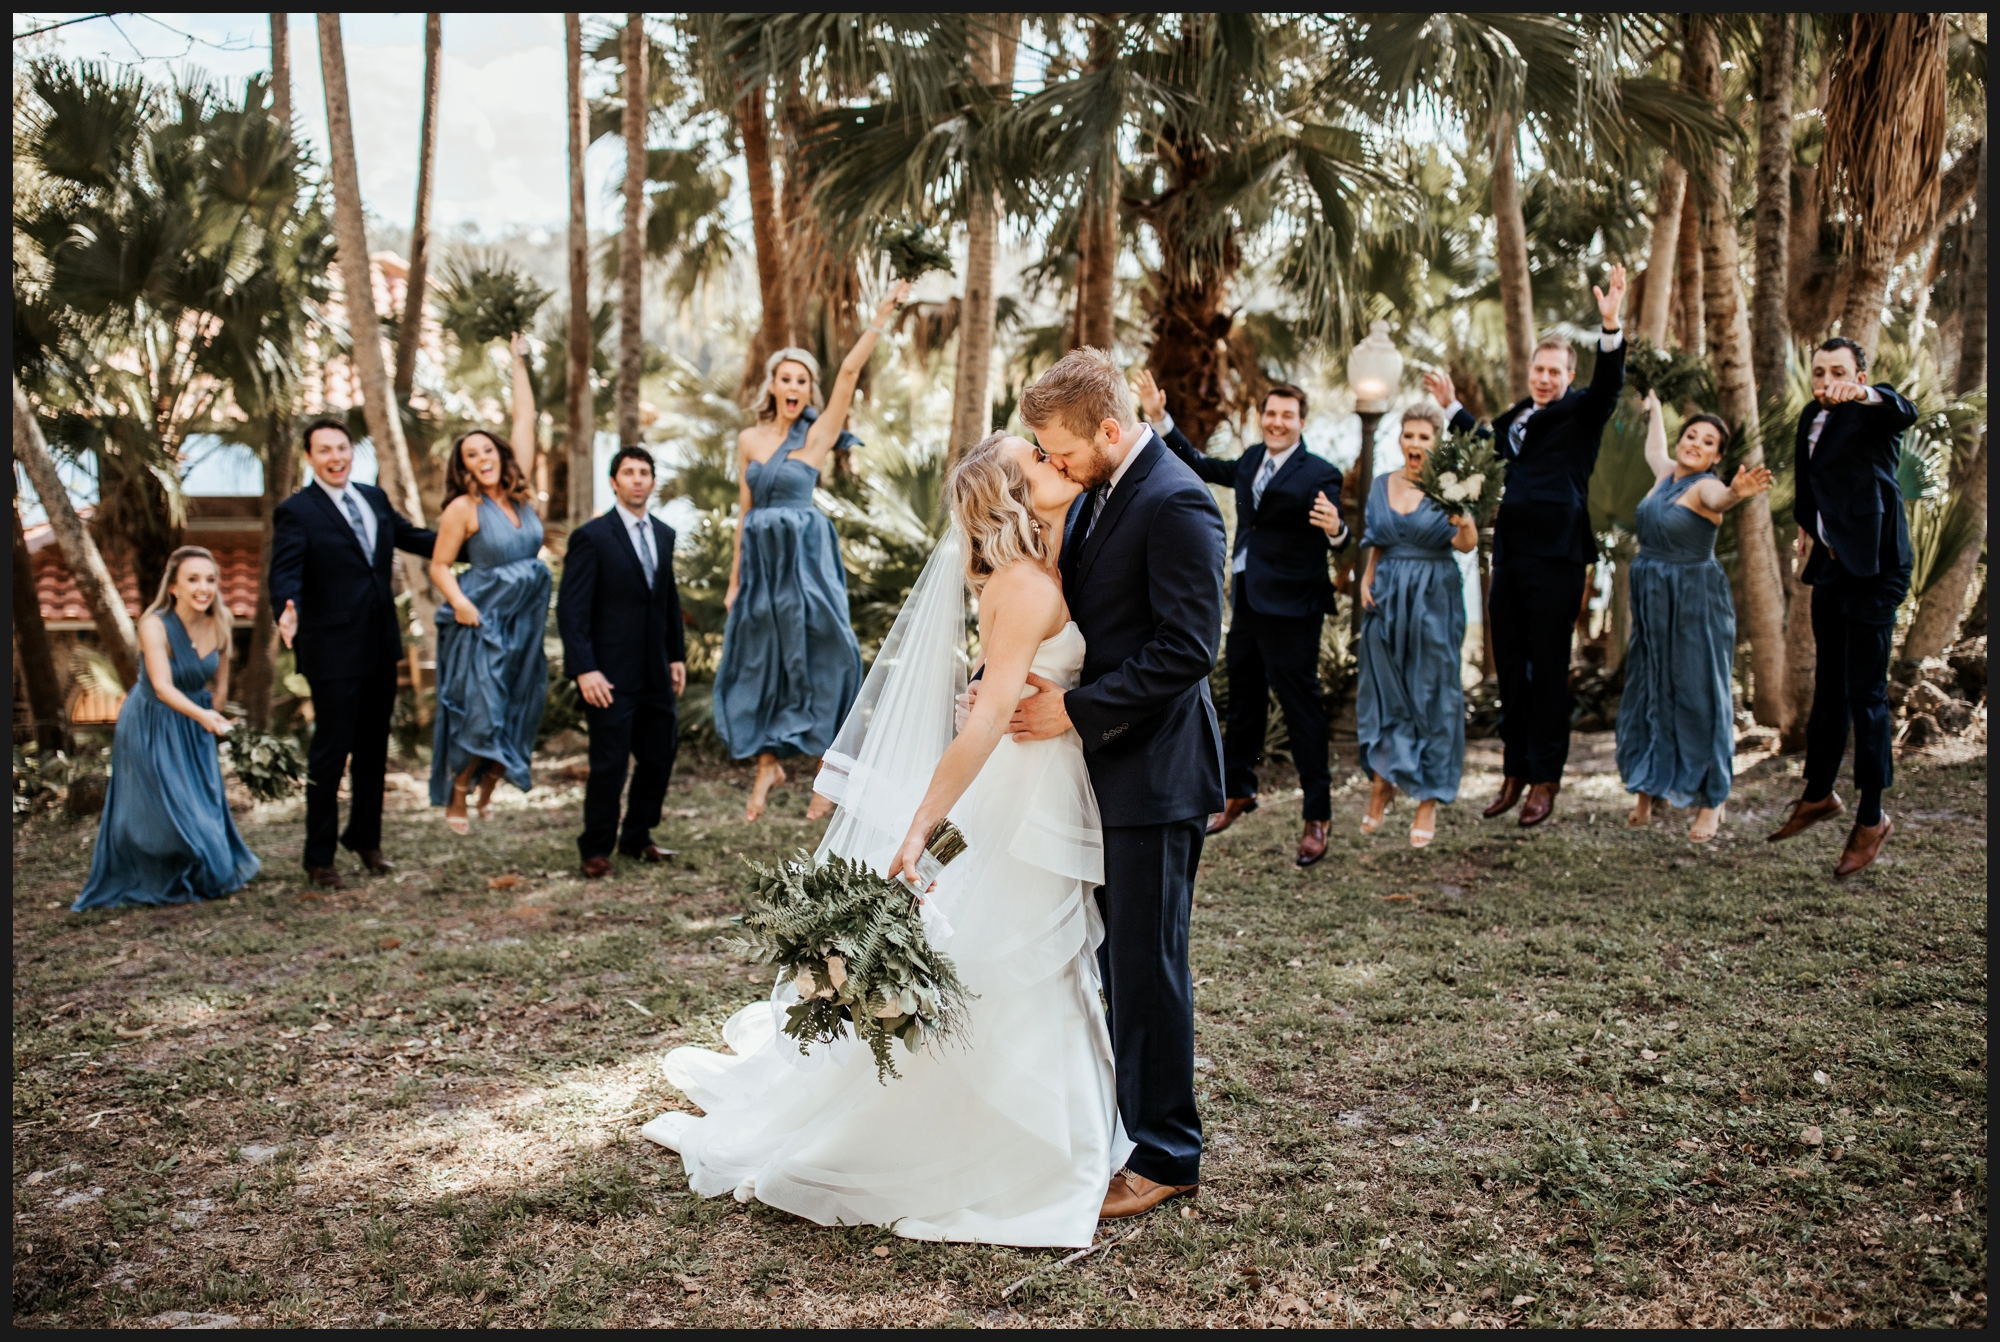 Orlando-Wedding-Photographer-destination-wedding-photographer-florida-wedding-photographer-bohemian-wedding-photographer_1507.jpg